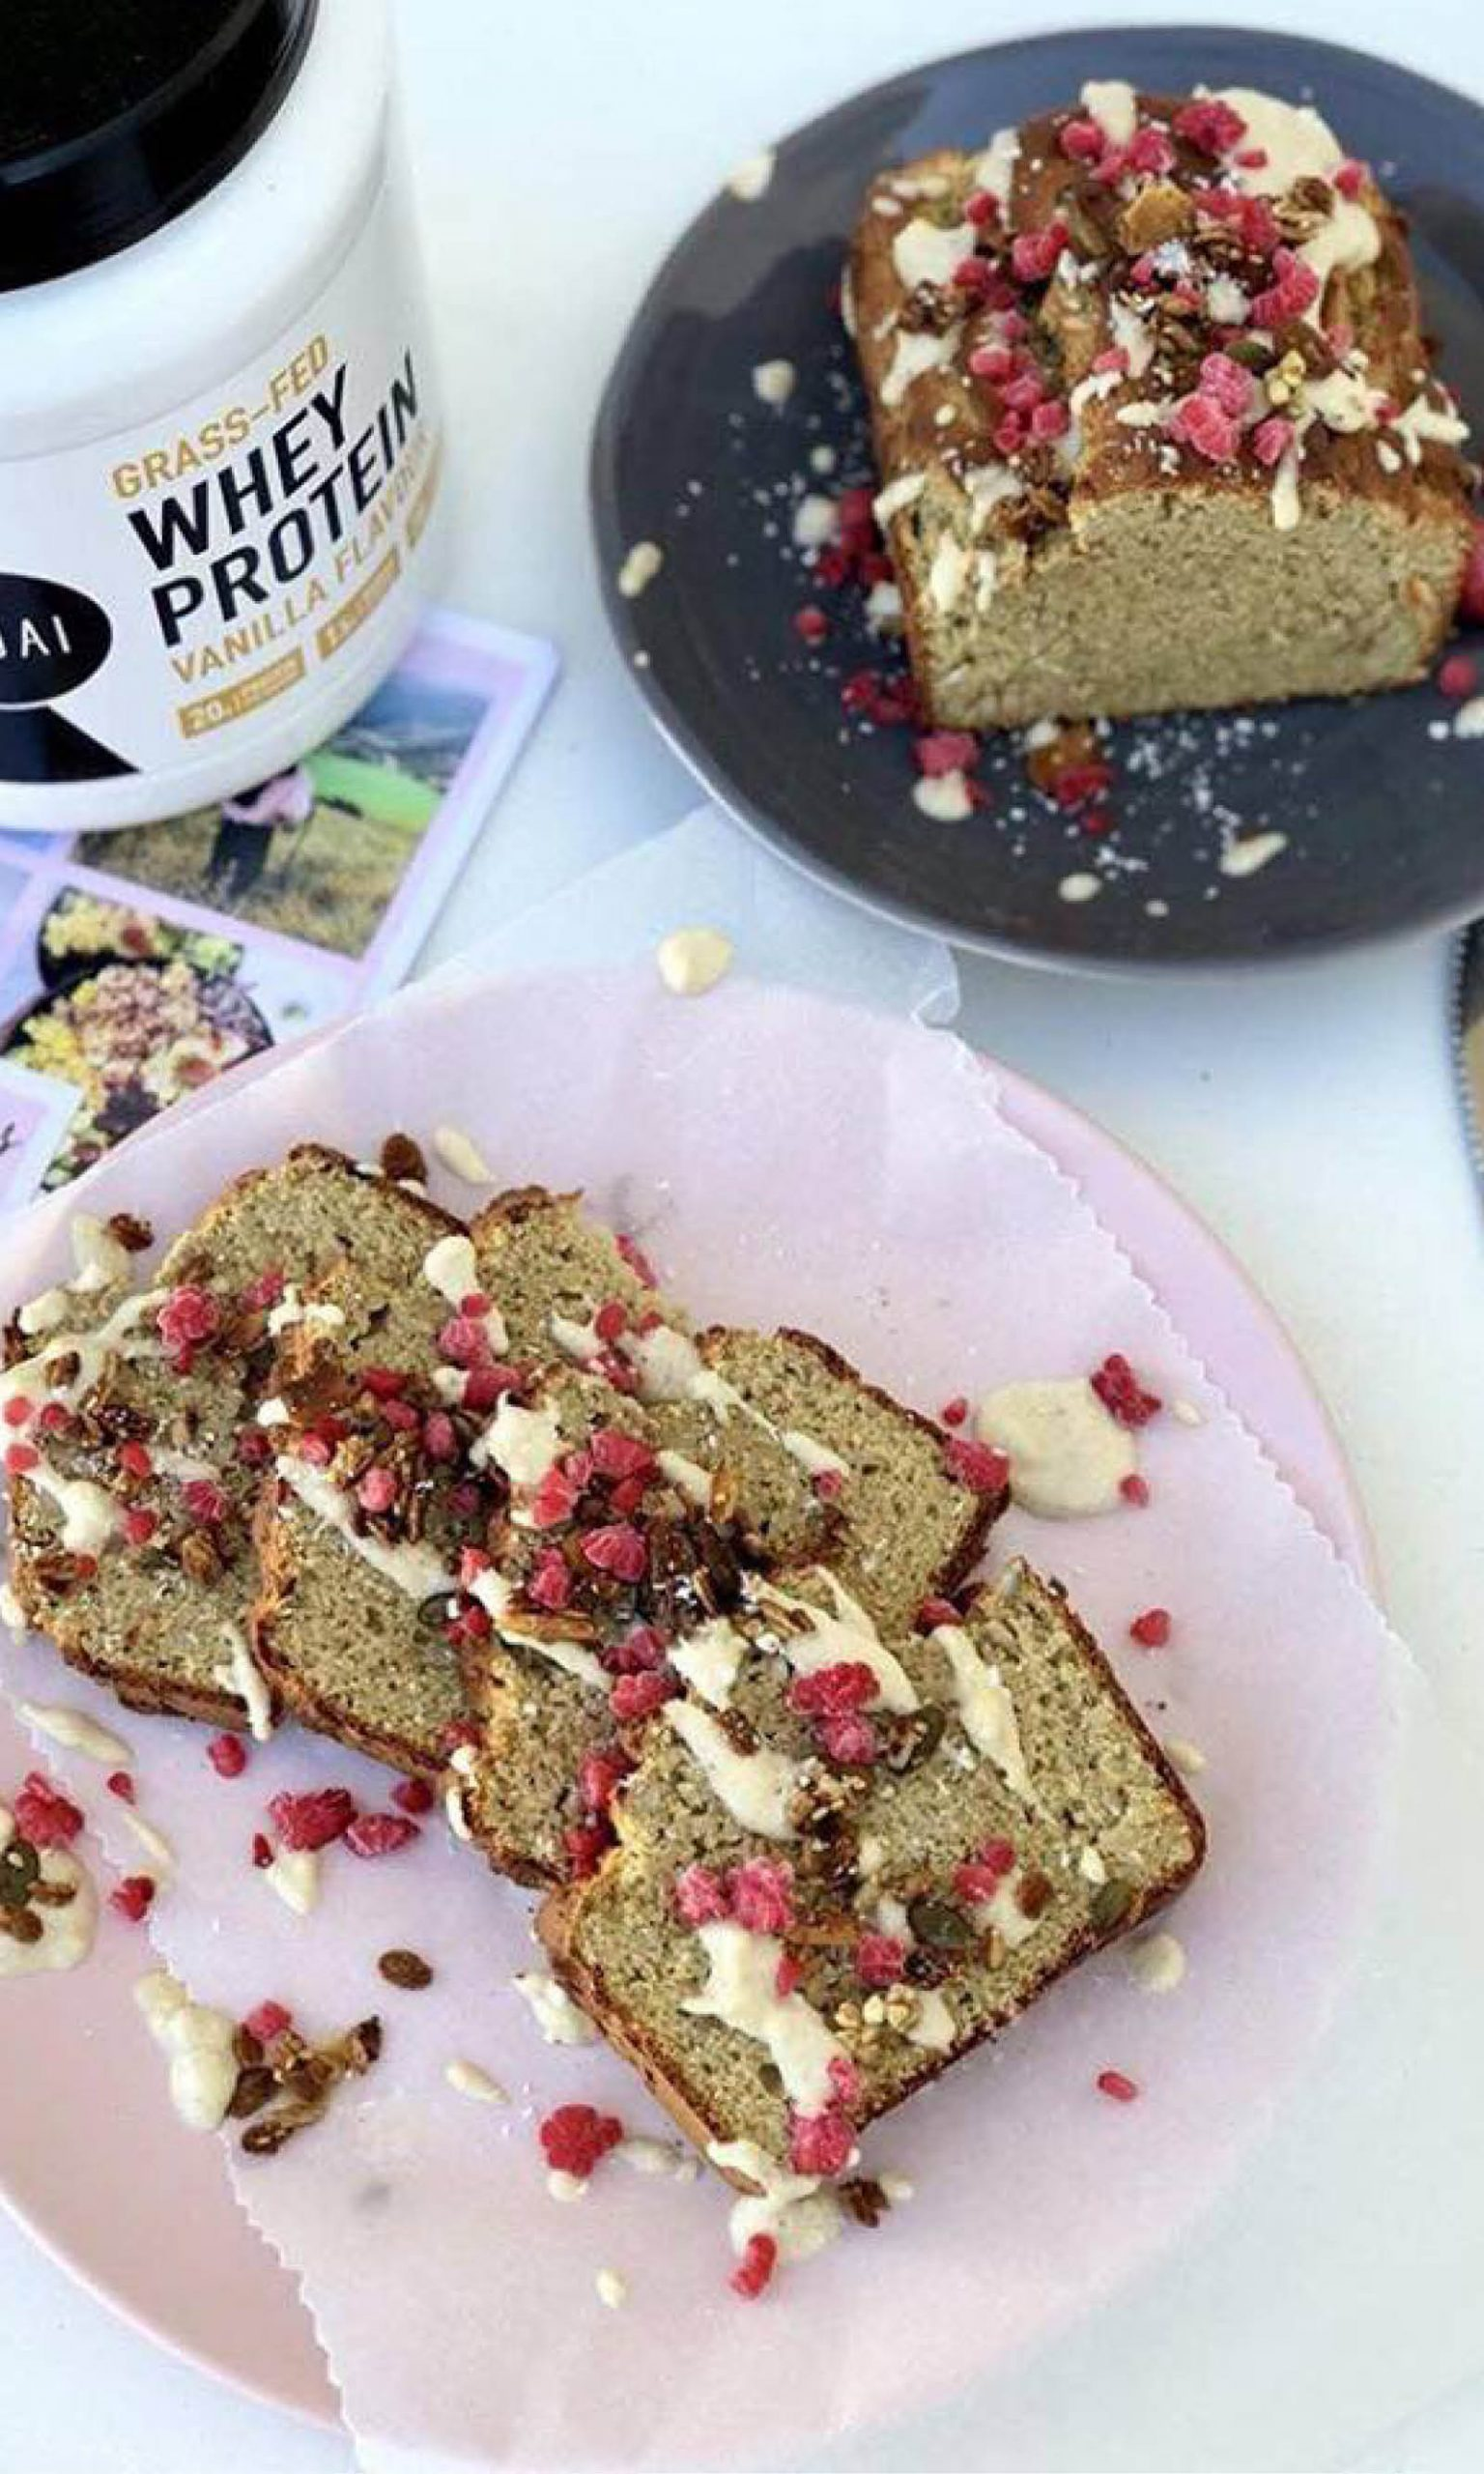 Jordyn's Channel yummy Protein Loaf with Kauai Whey Protein Powder